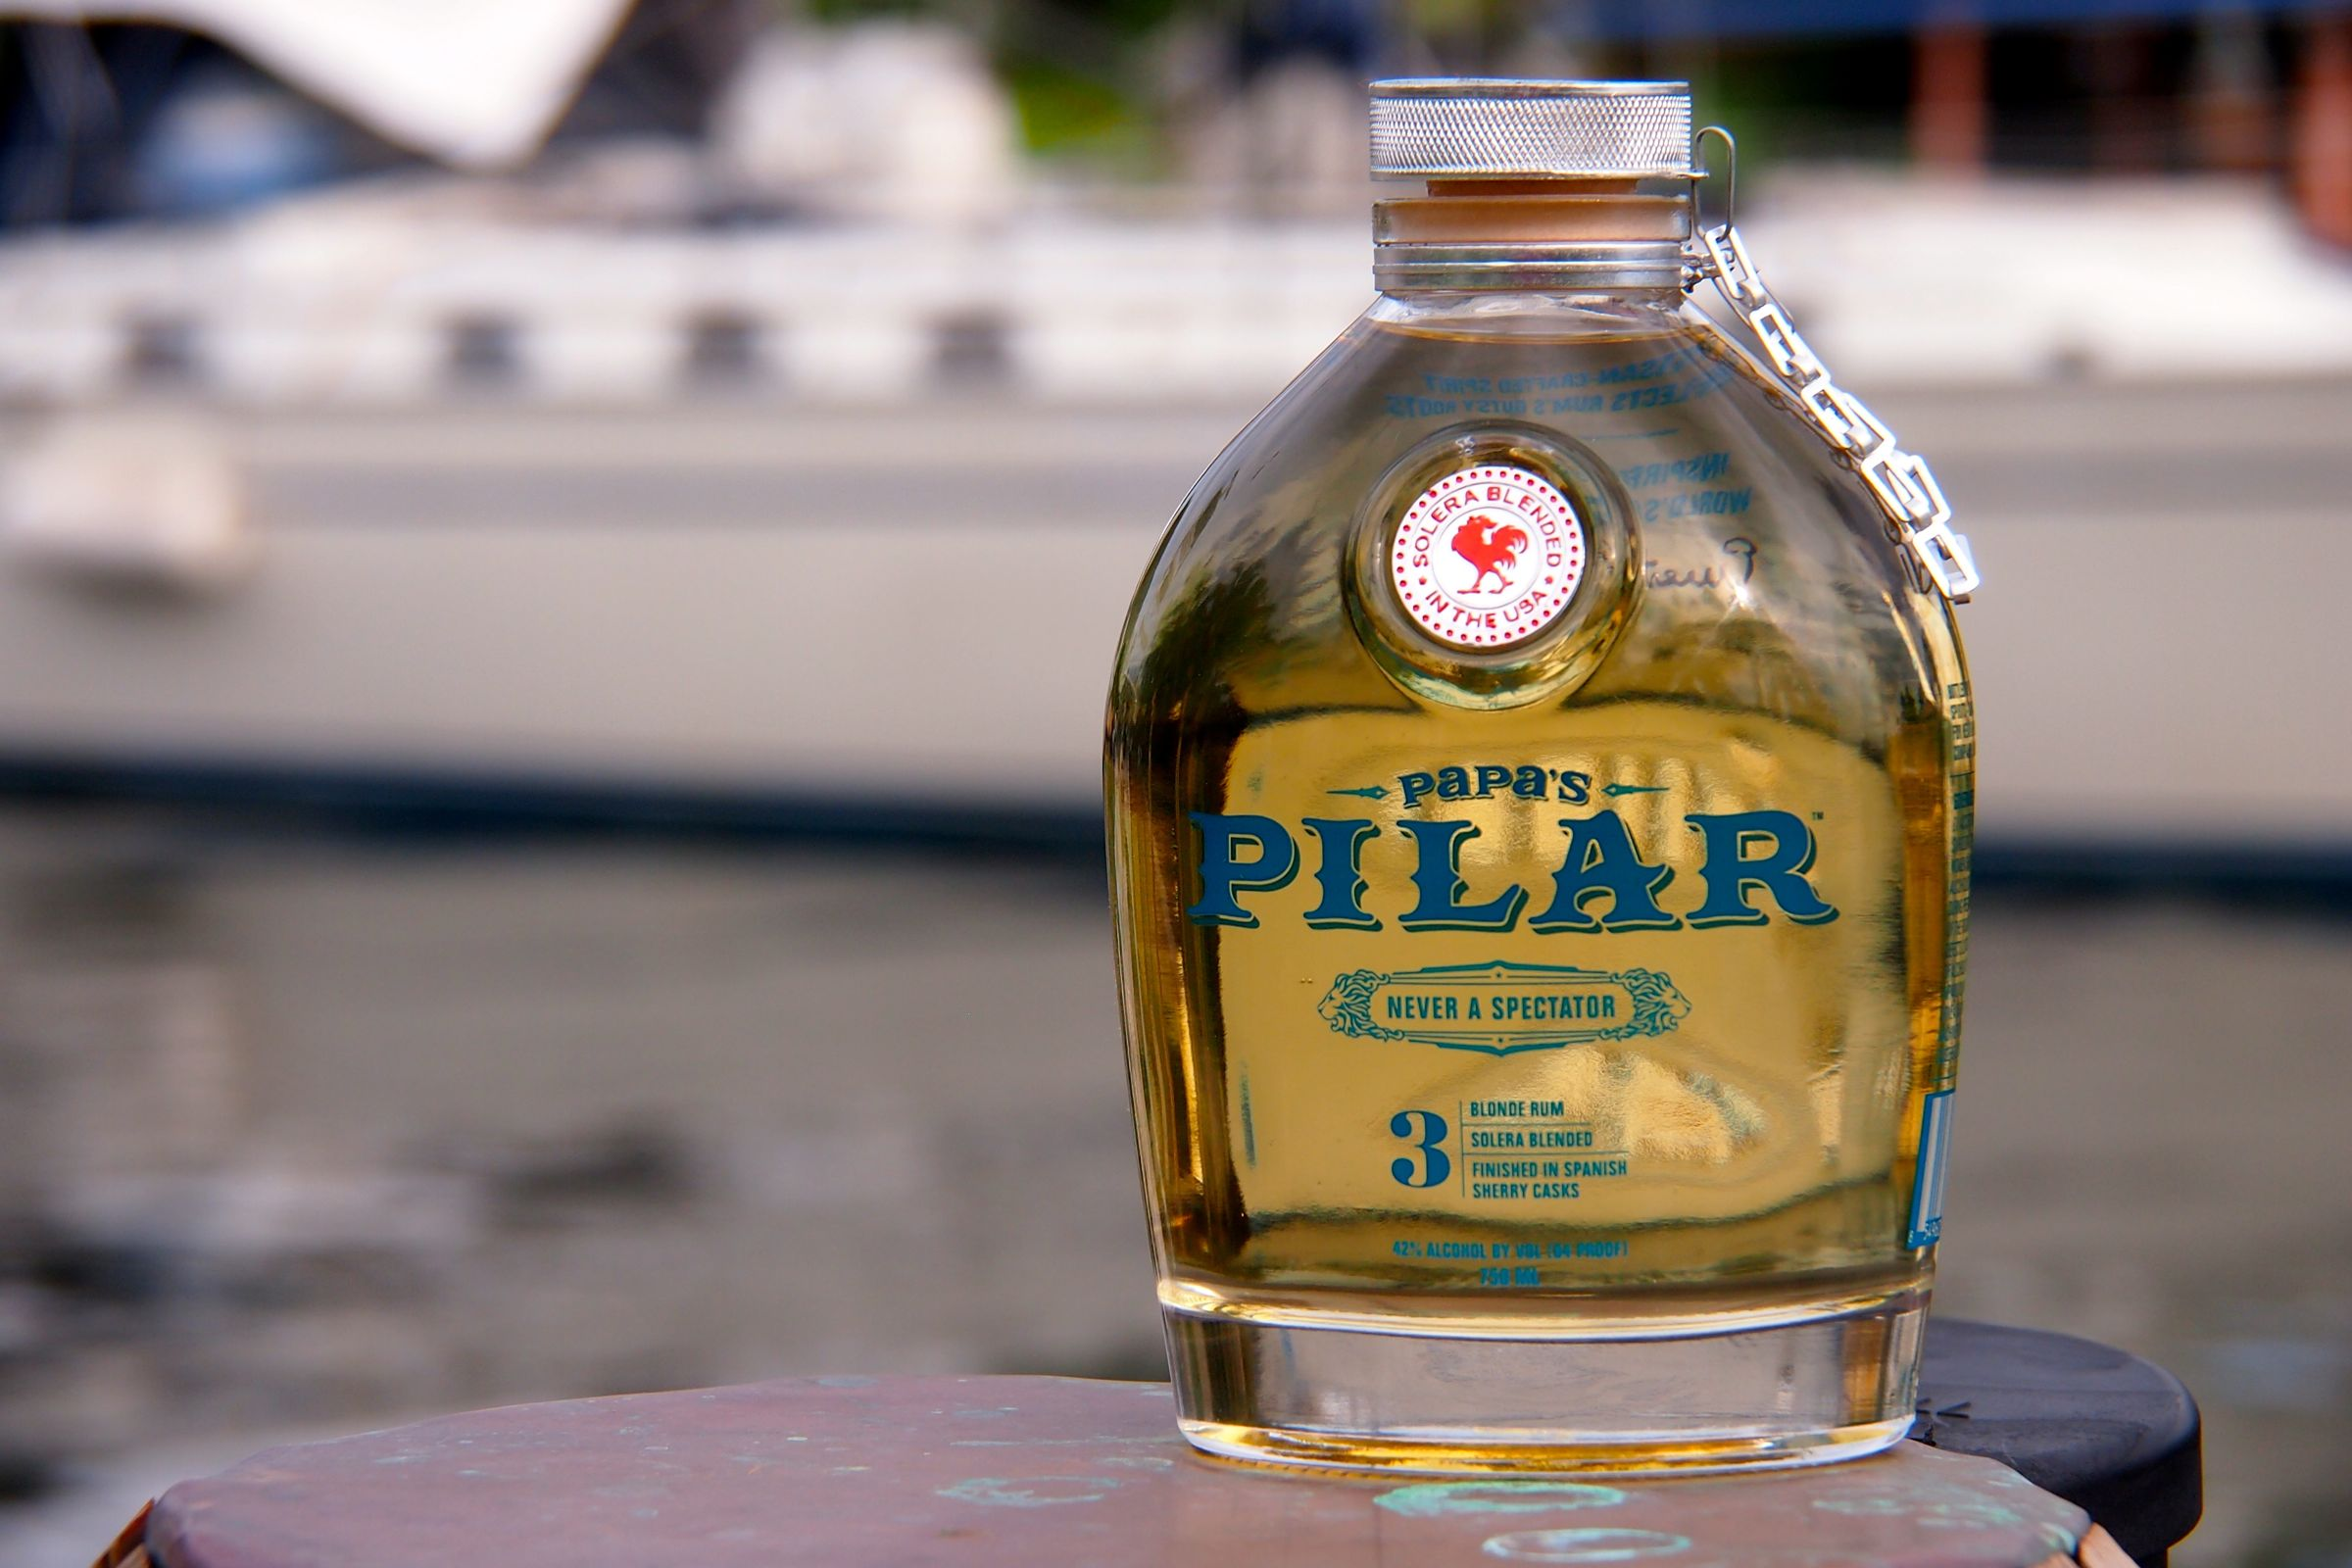 Friday Happy Hour: Having More Fun with Papa's Pilar Blonde